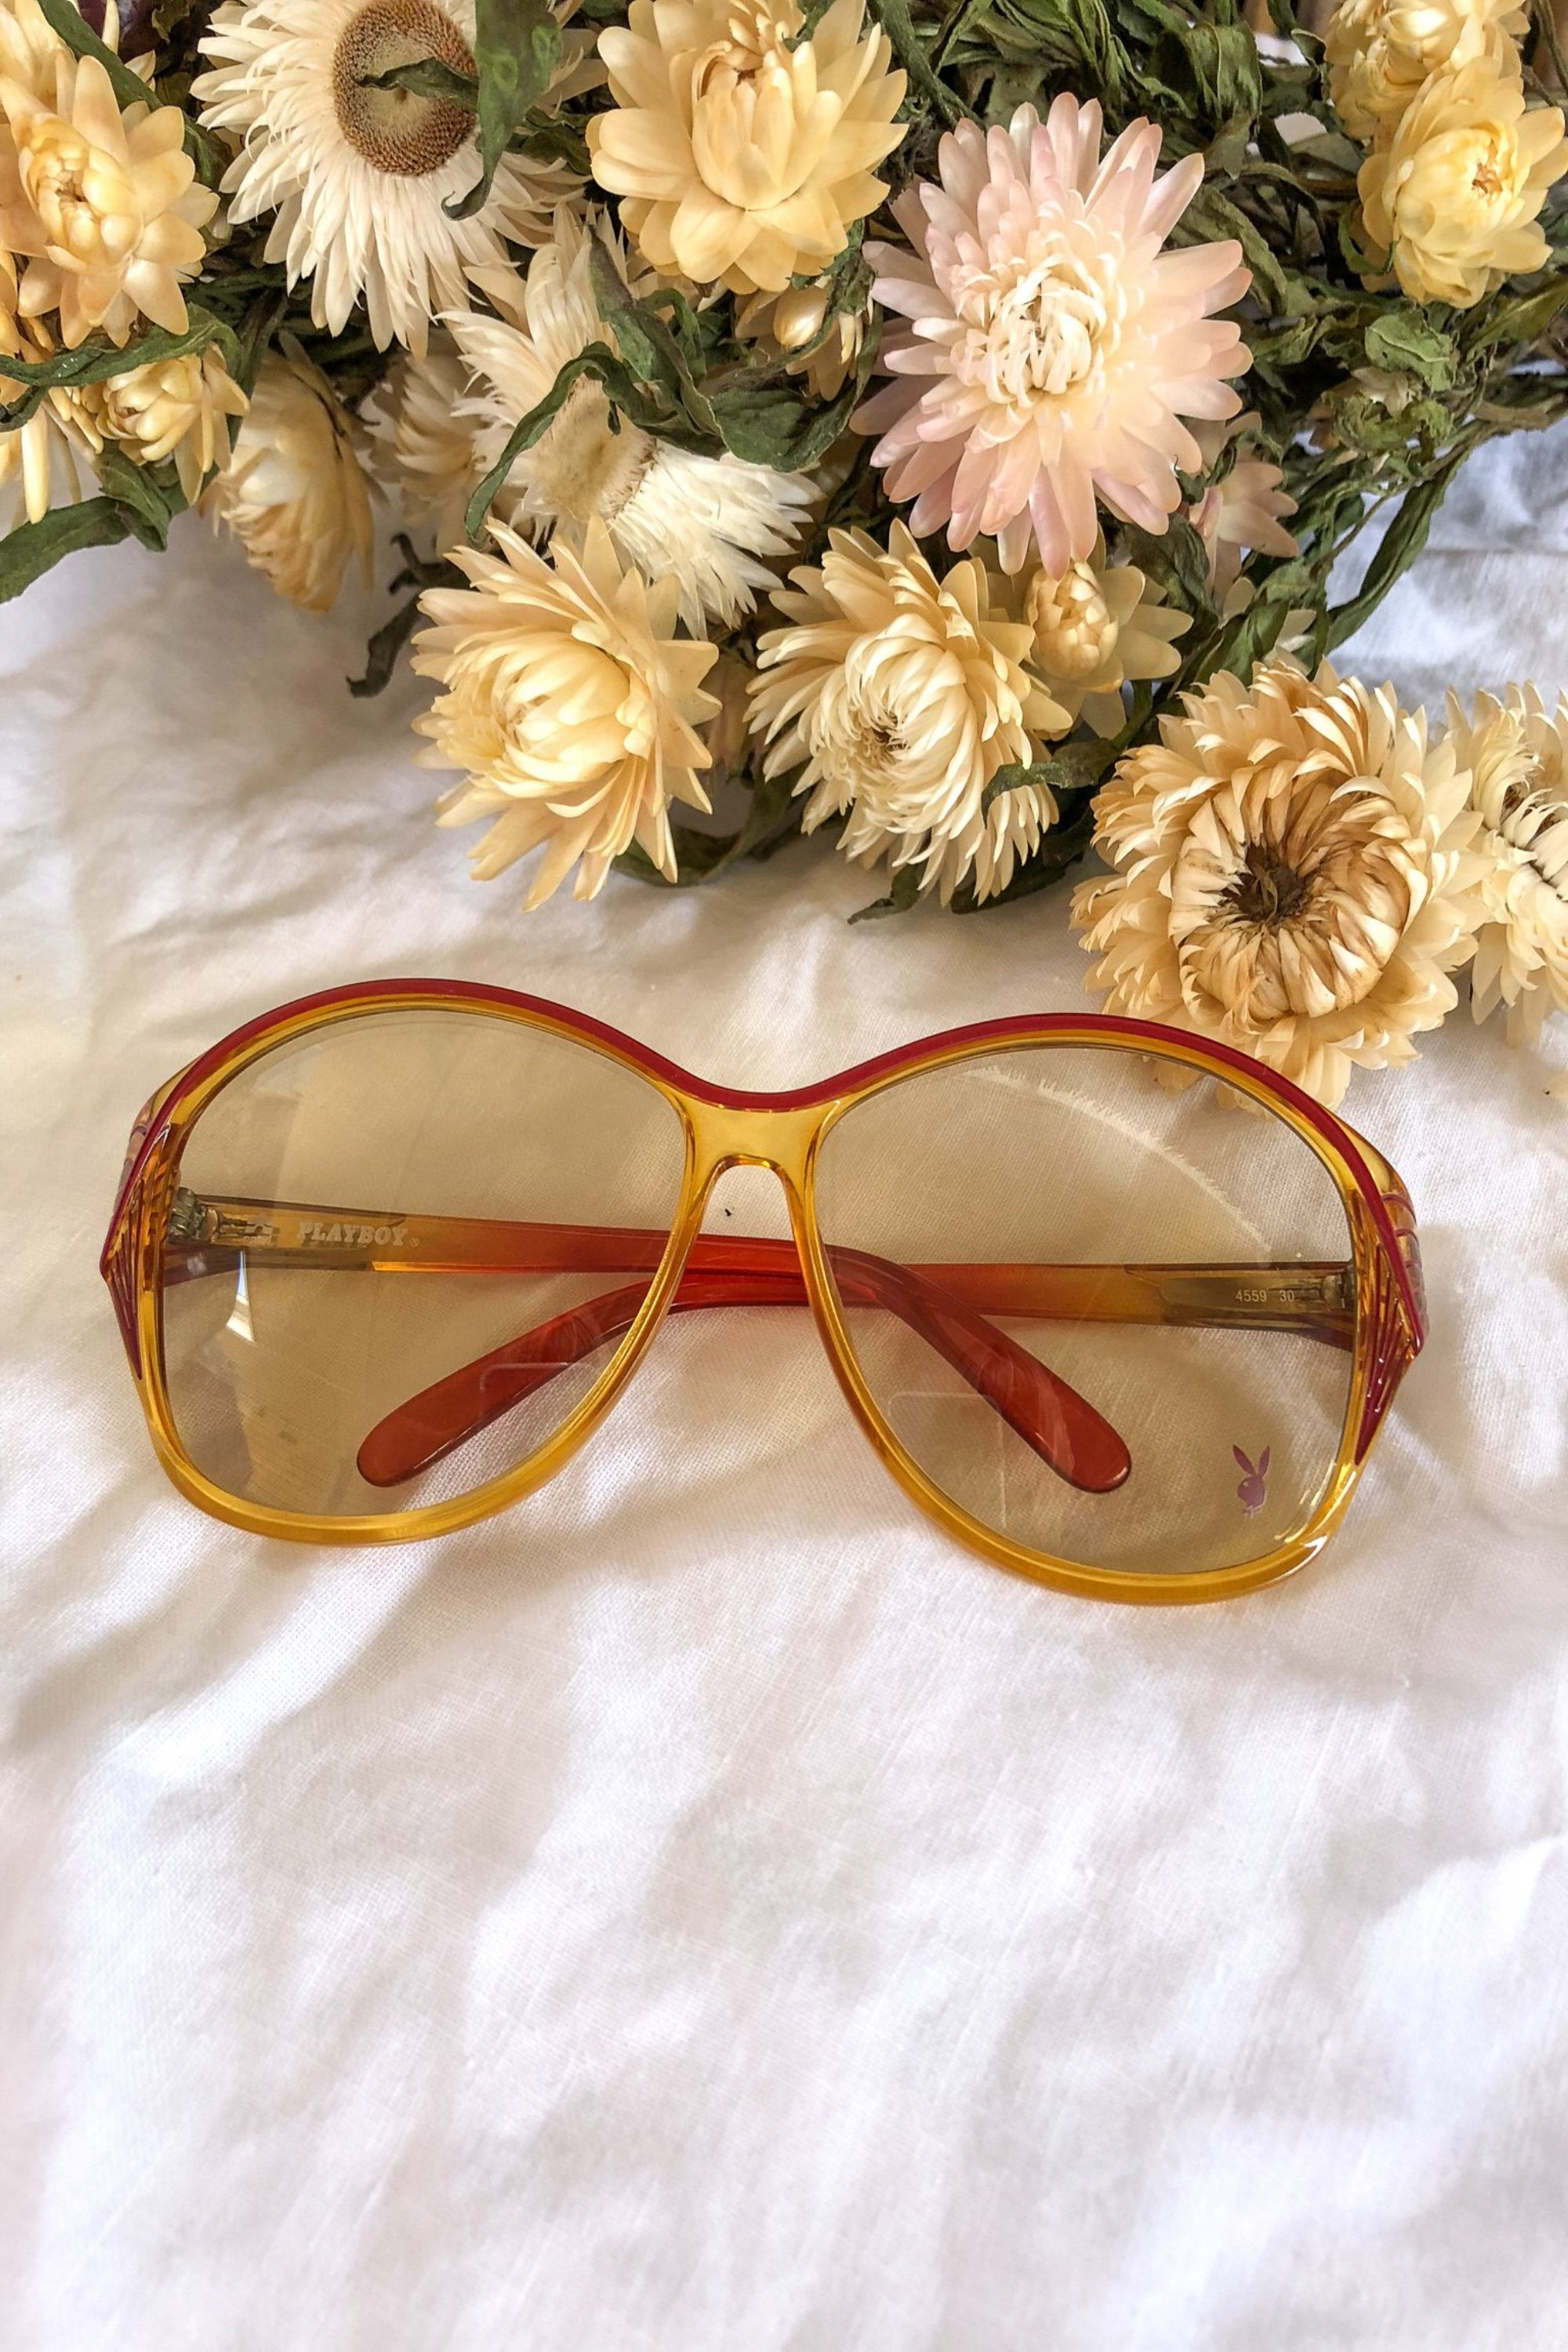 Vintage 1970s Oversized Playboy Sunglasses